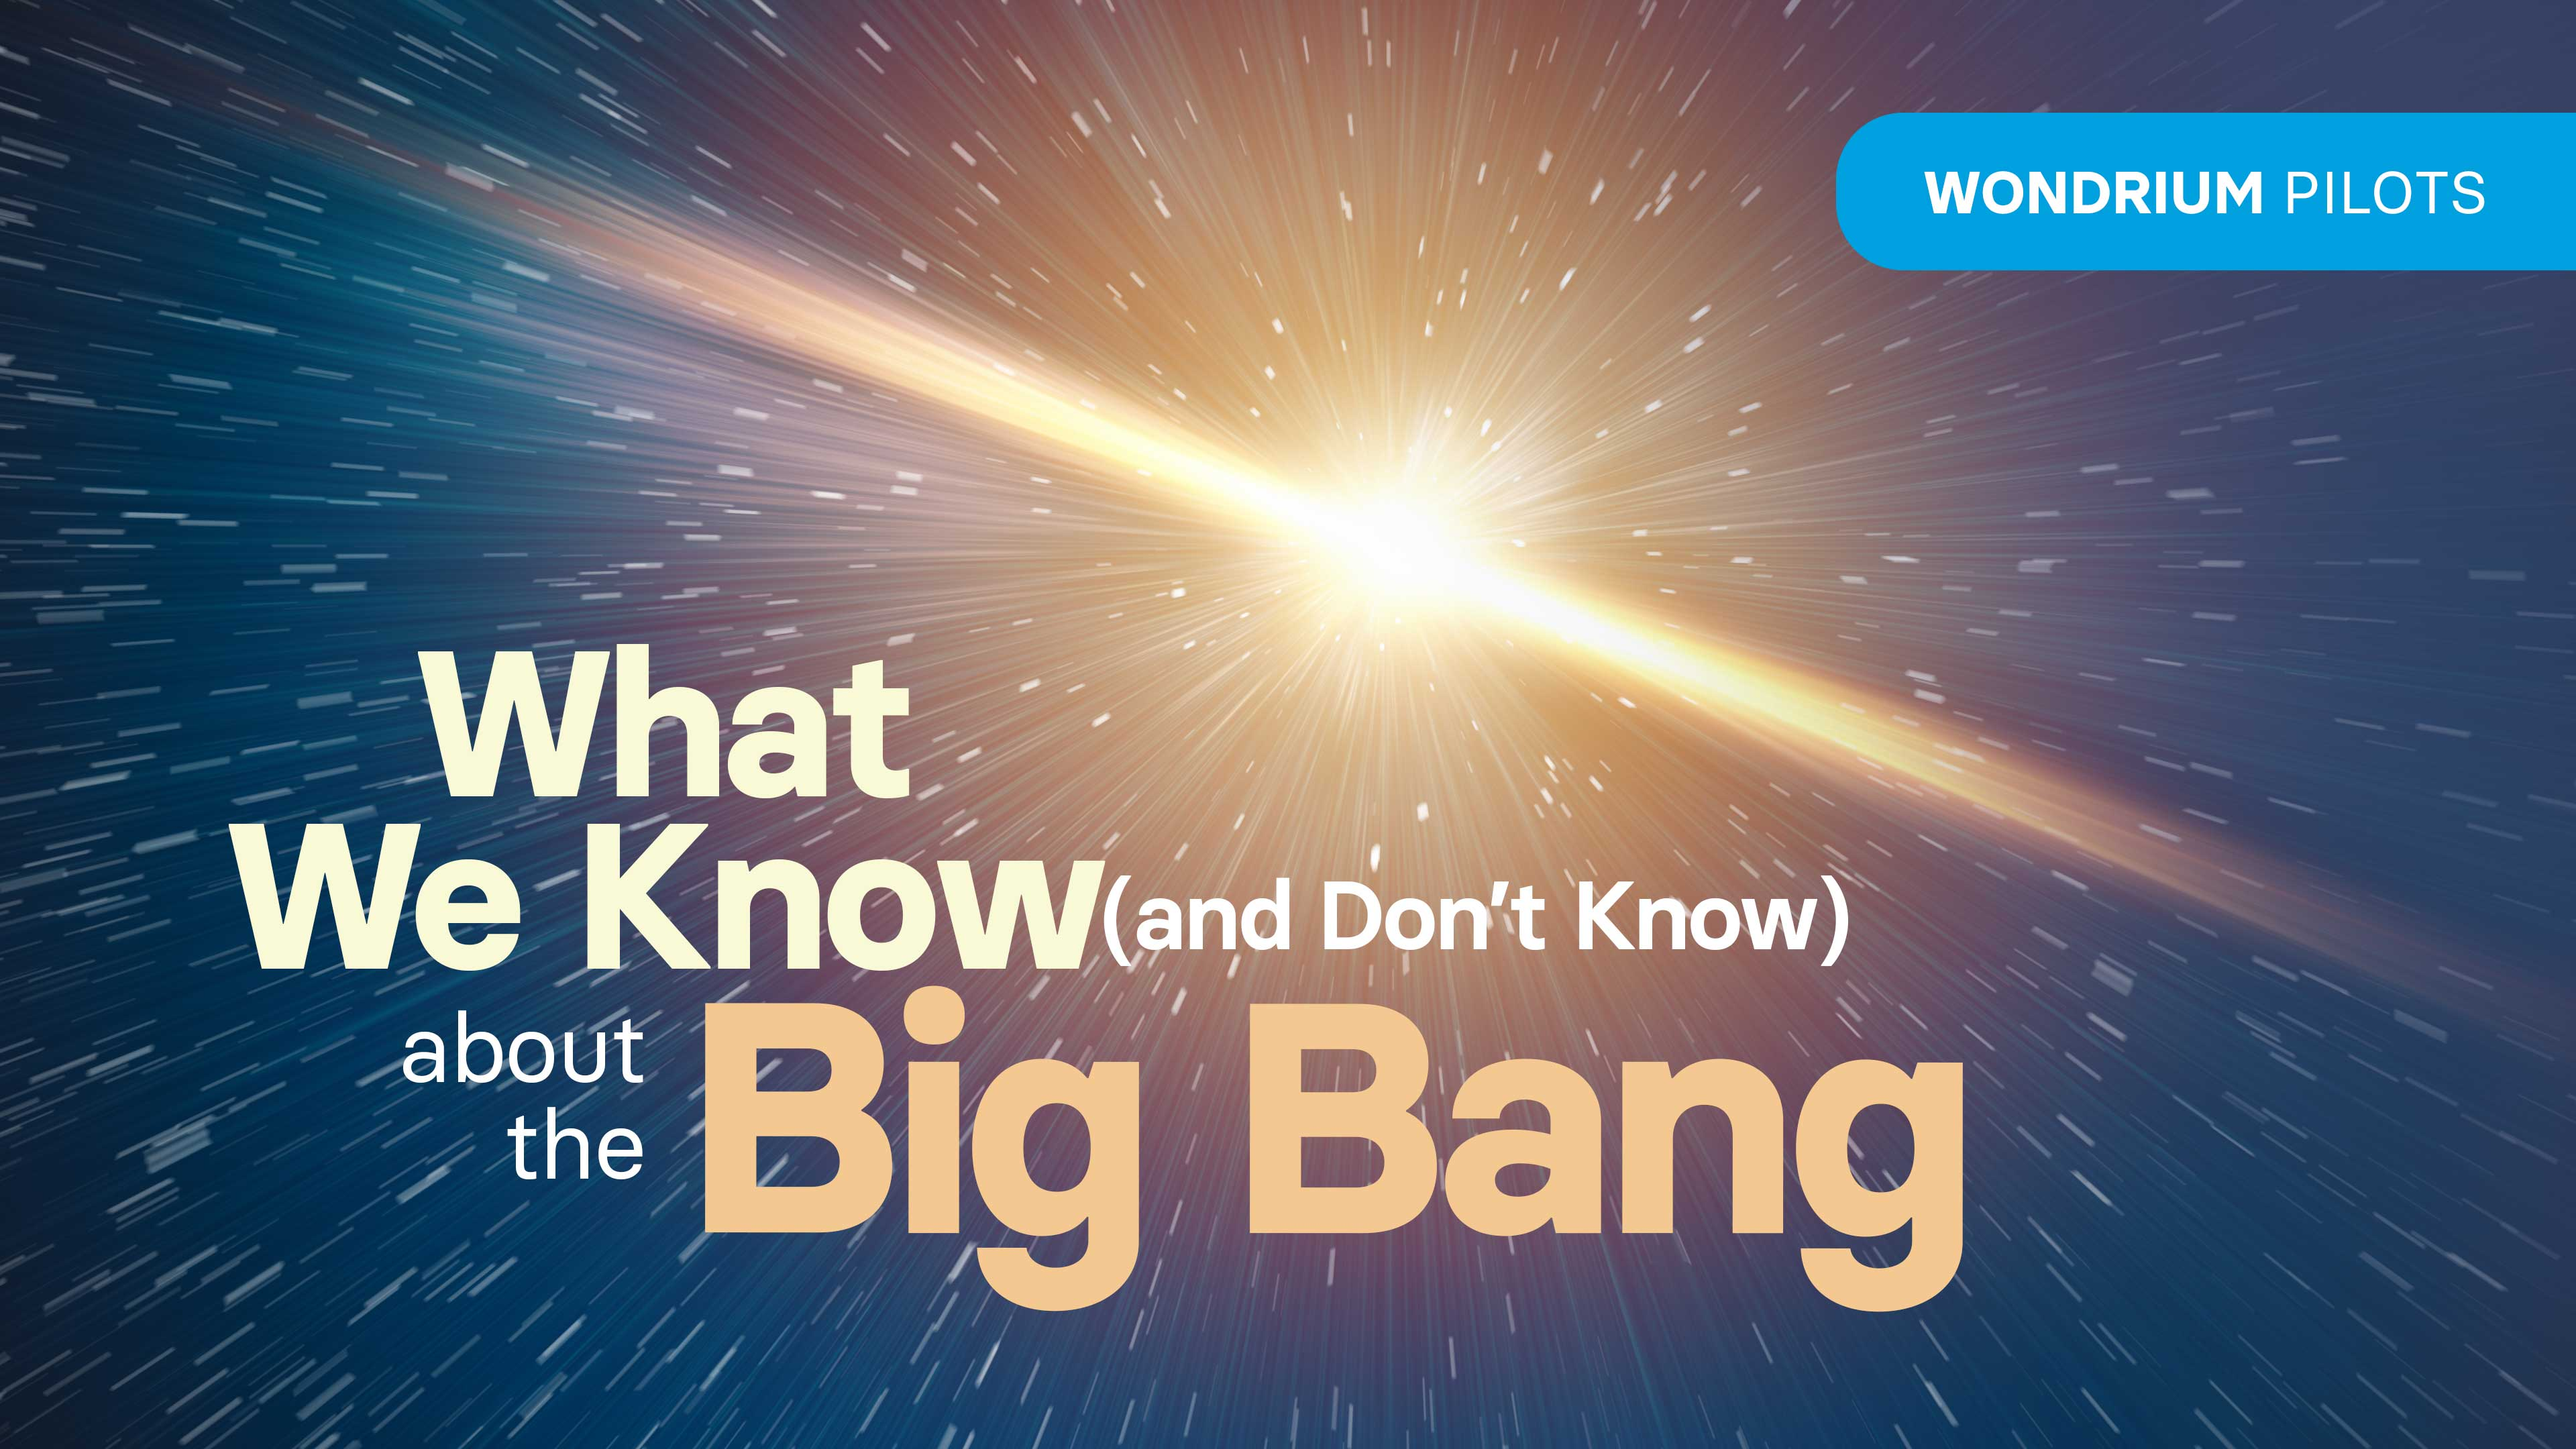 What We Know (and Don't Know) about the Big Bang